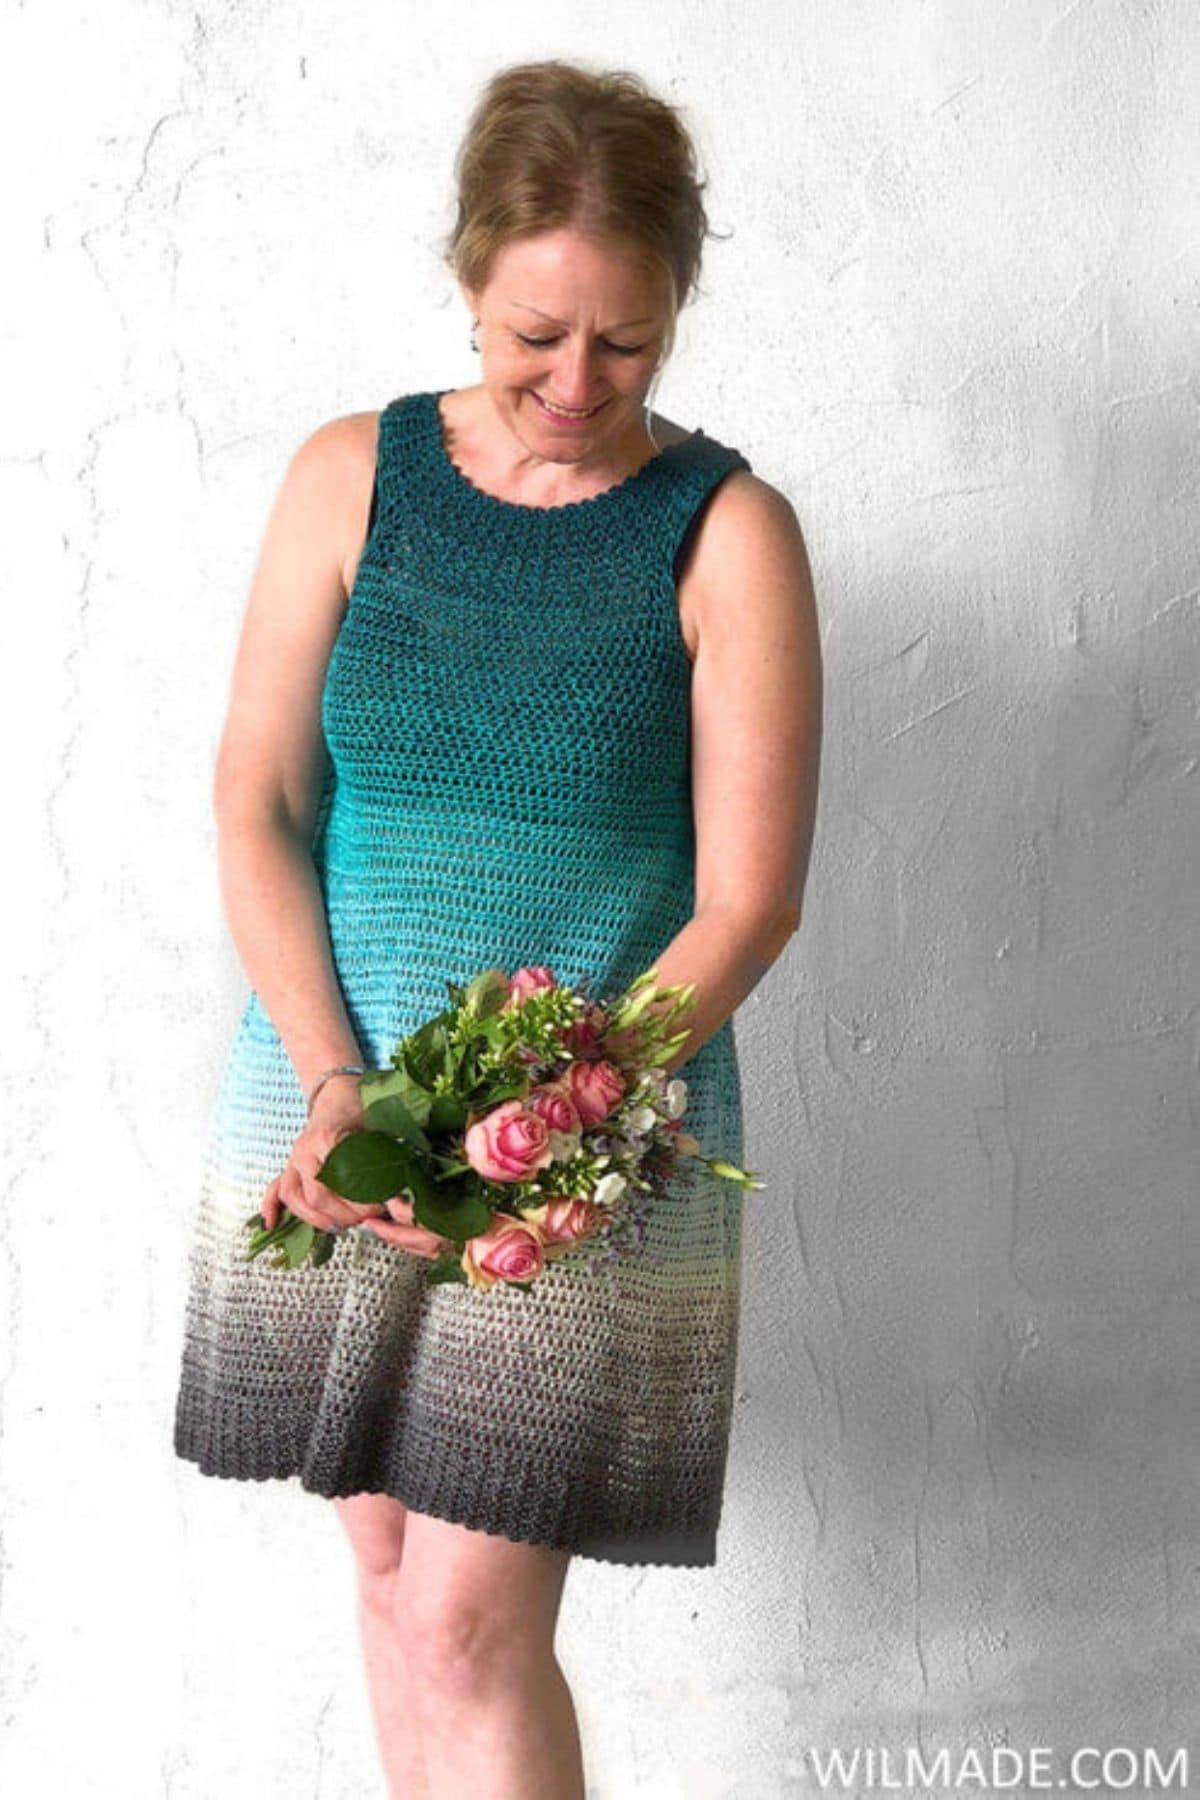 Woman in teal ombre tank dress holding flowers